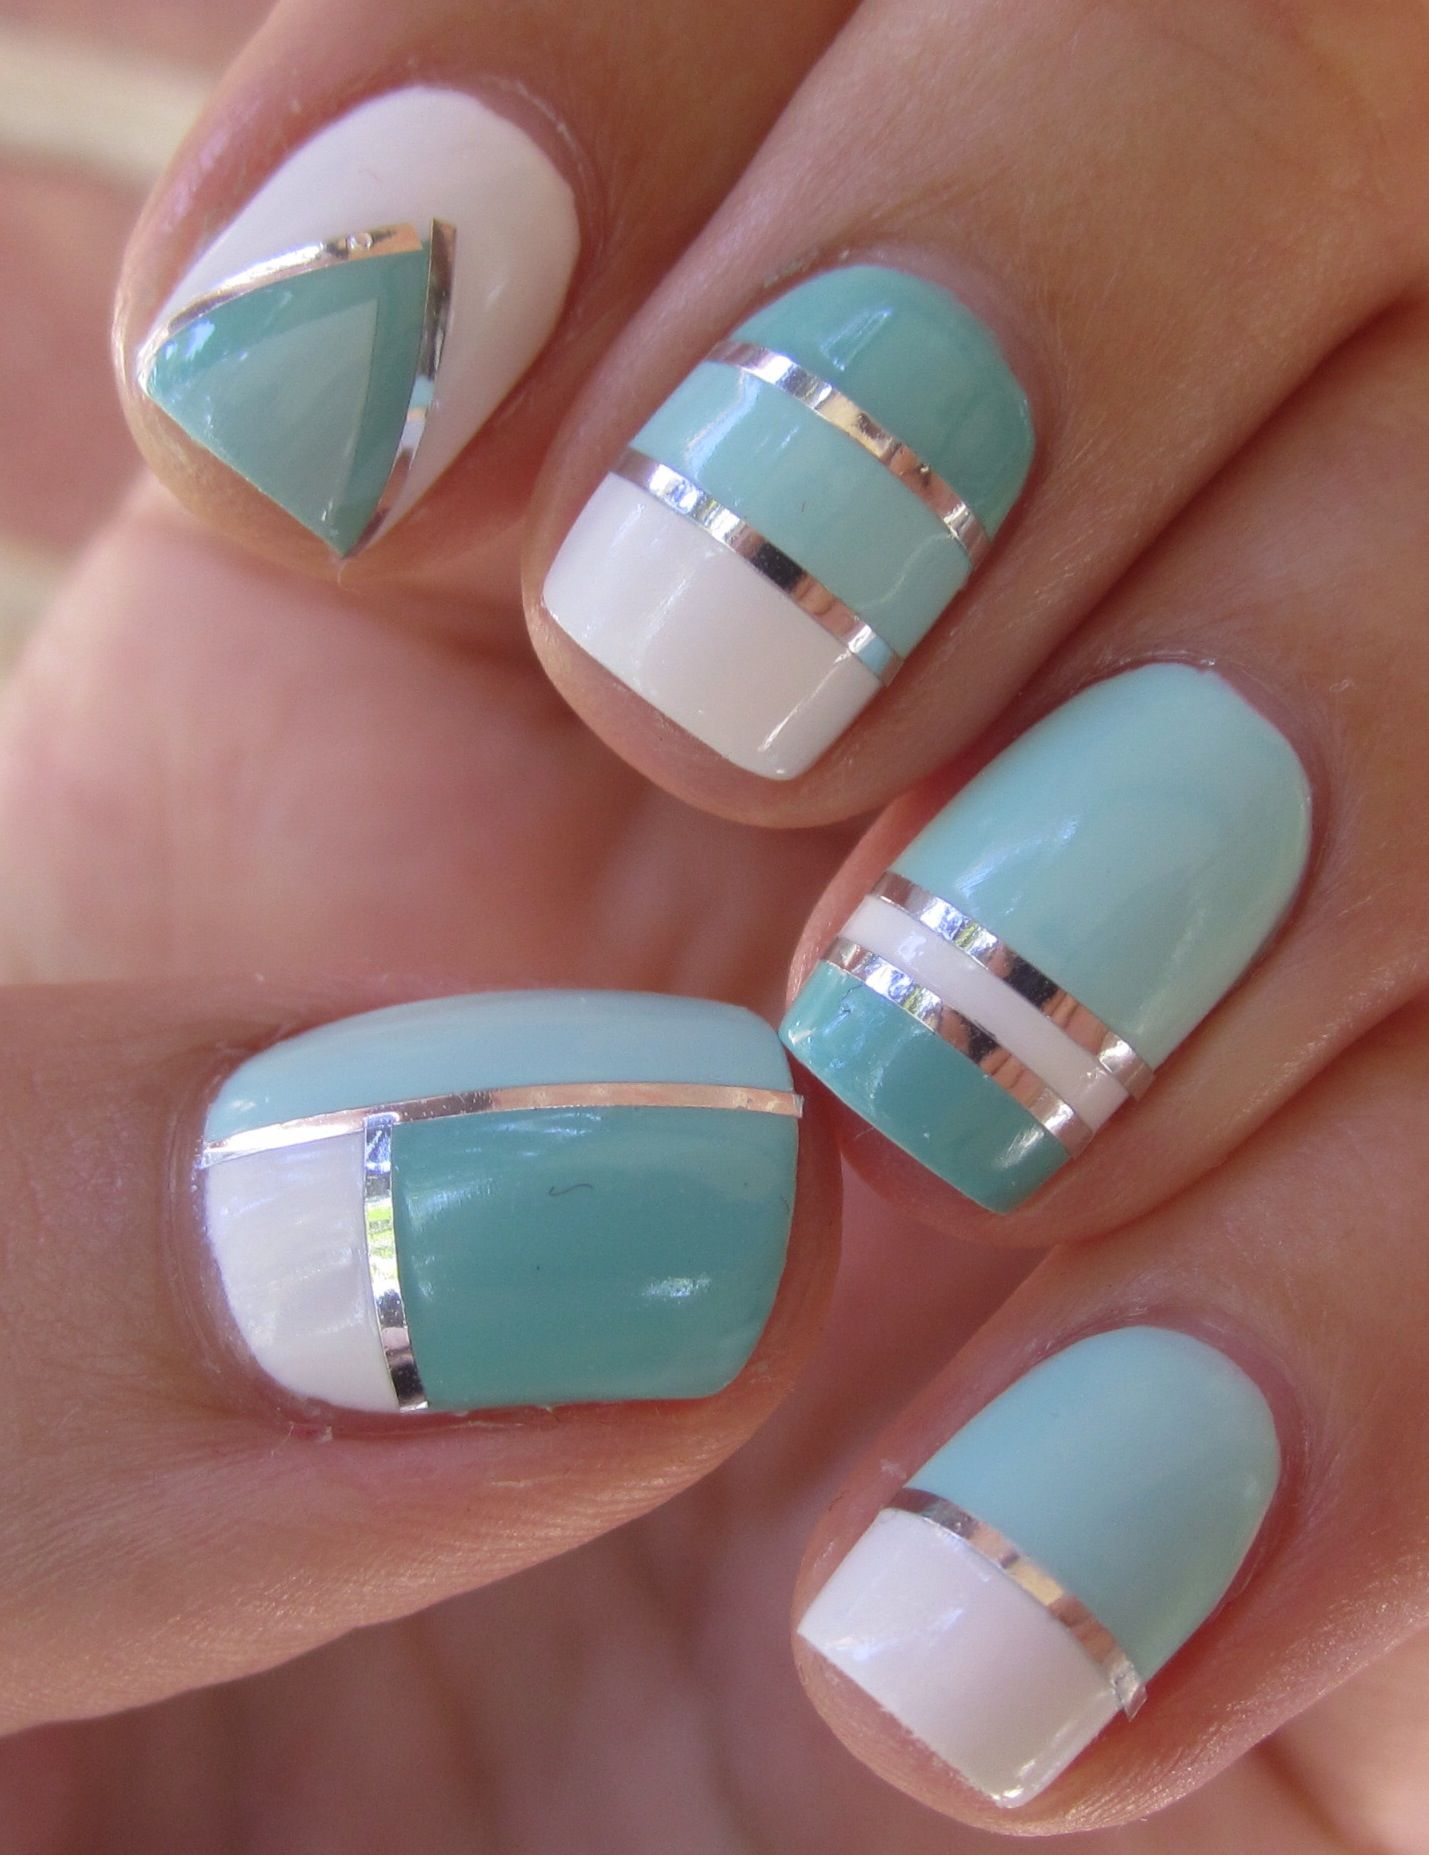 Prom Nail Ideas: The Prettiest Manicures For Your Big Night | Classy ...